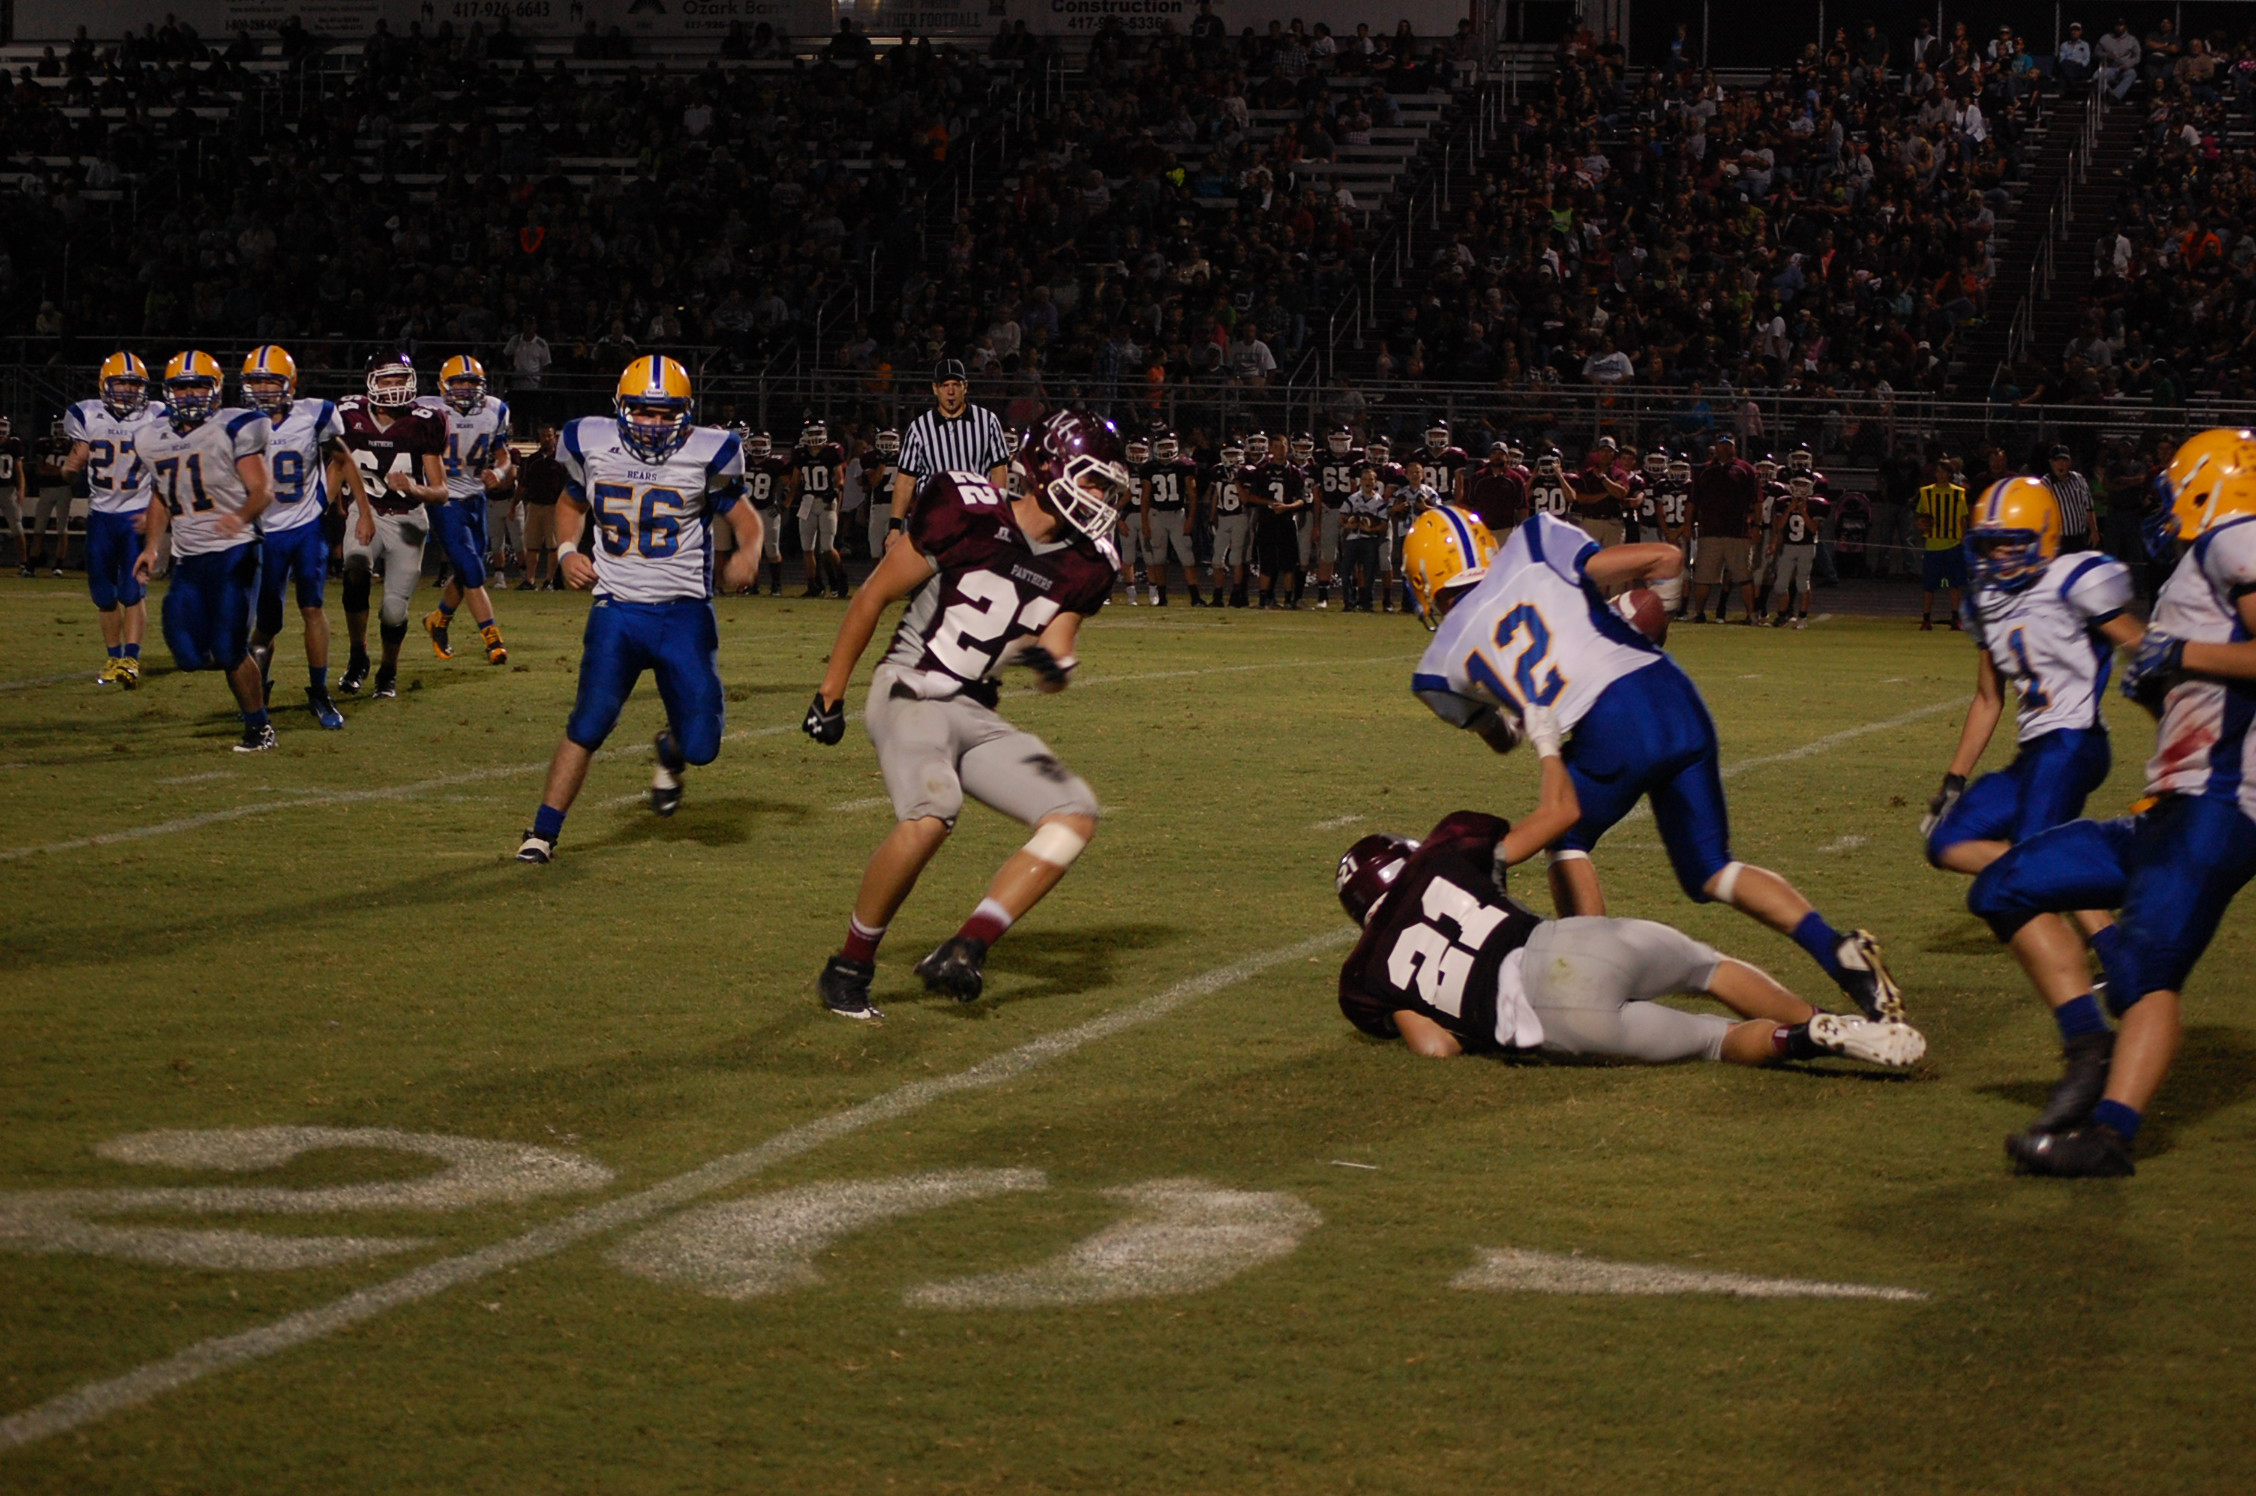 Mtn. Grove's Jamison Cain grabs a handful of jersey as he attempts to bring Kane Thompson down after Thompson intercepted a Mtn. Grove pass in the first half Friday night.